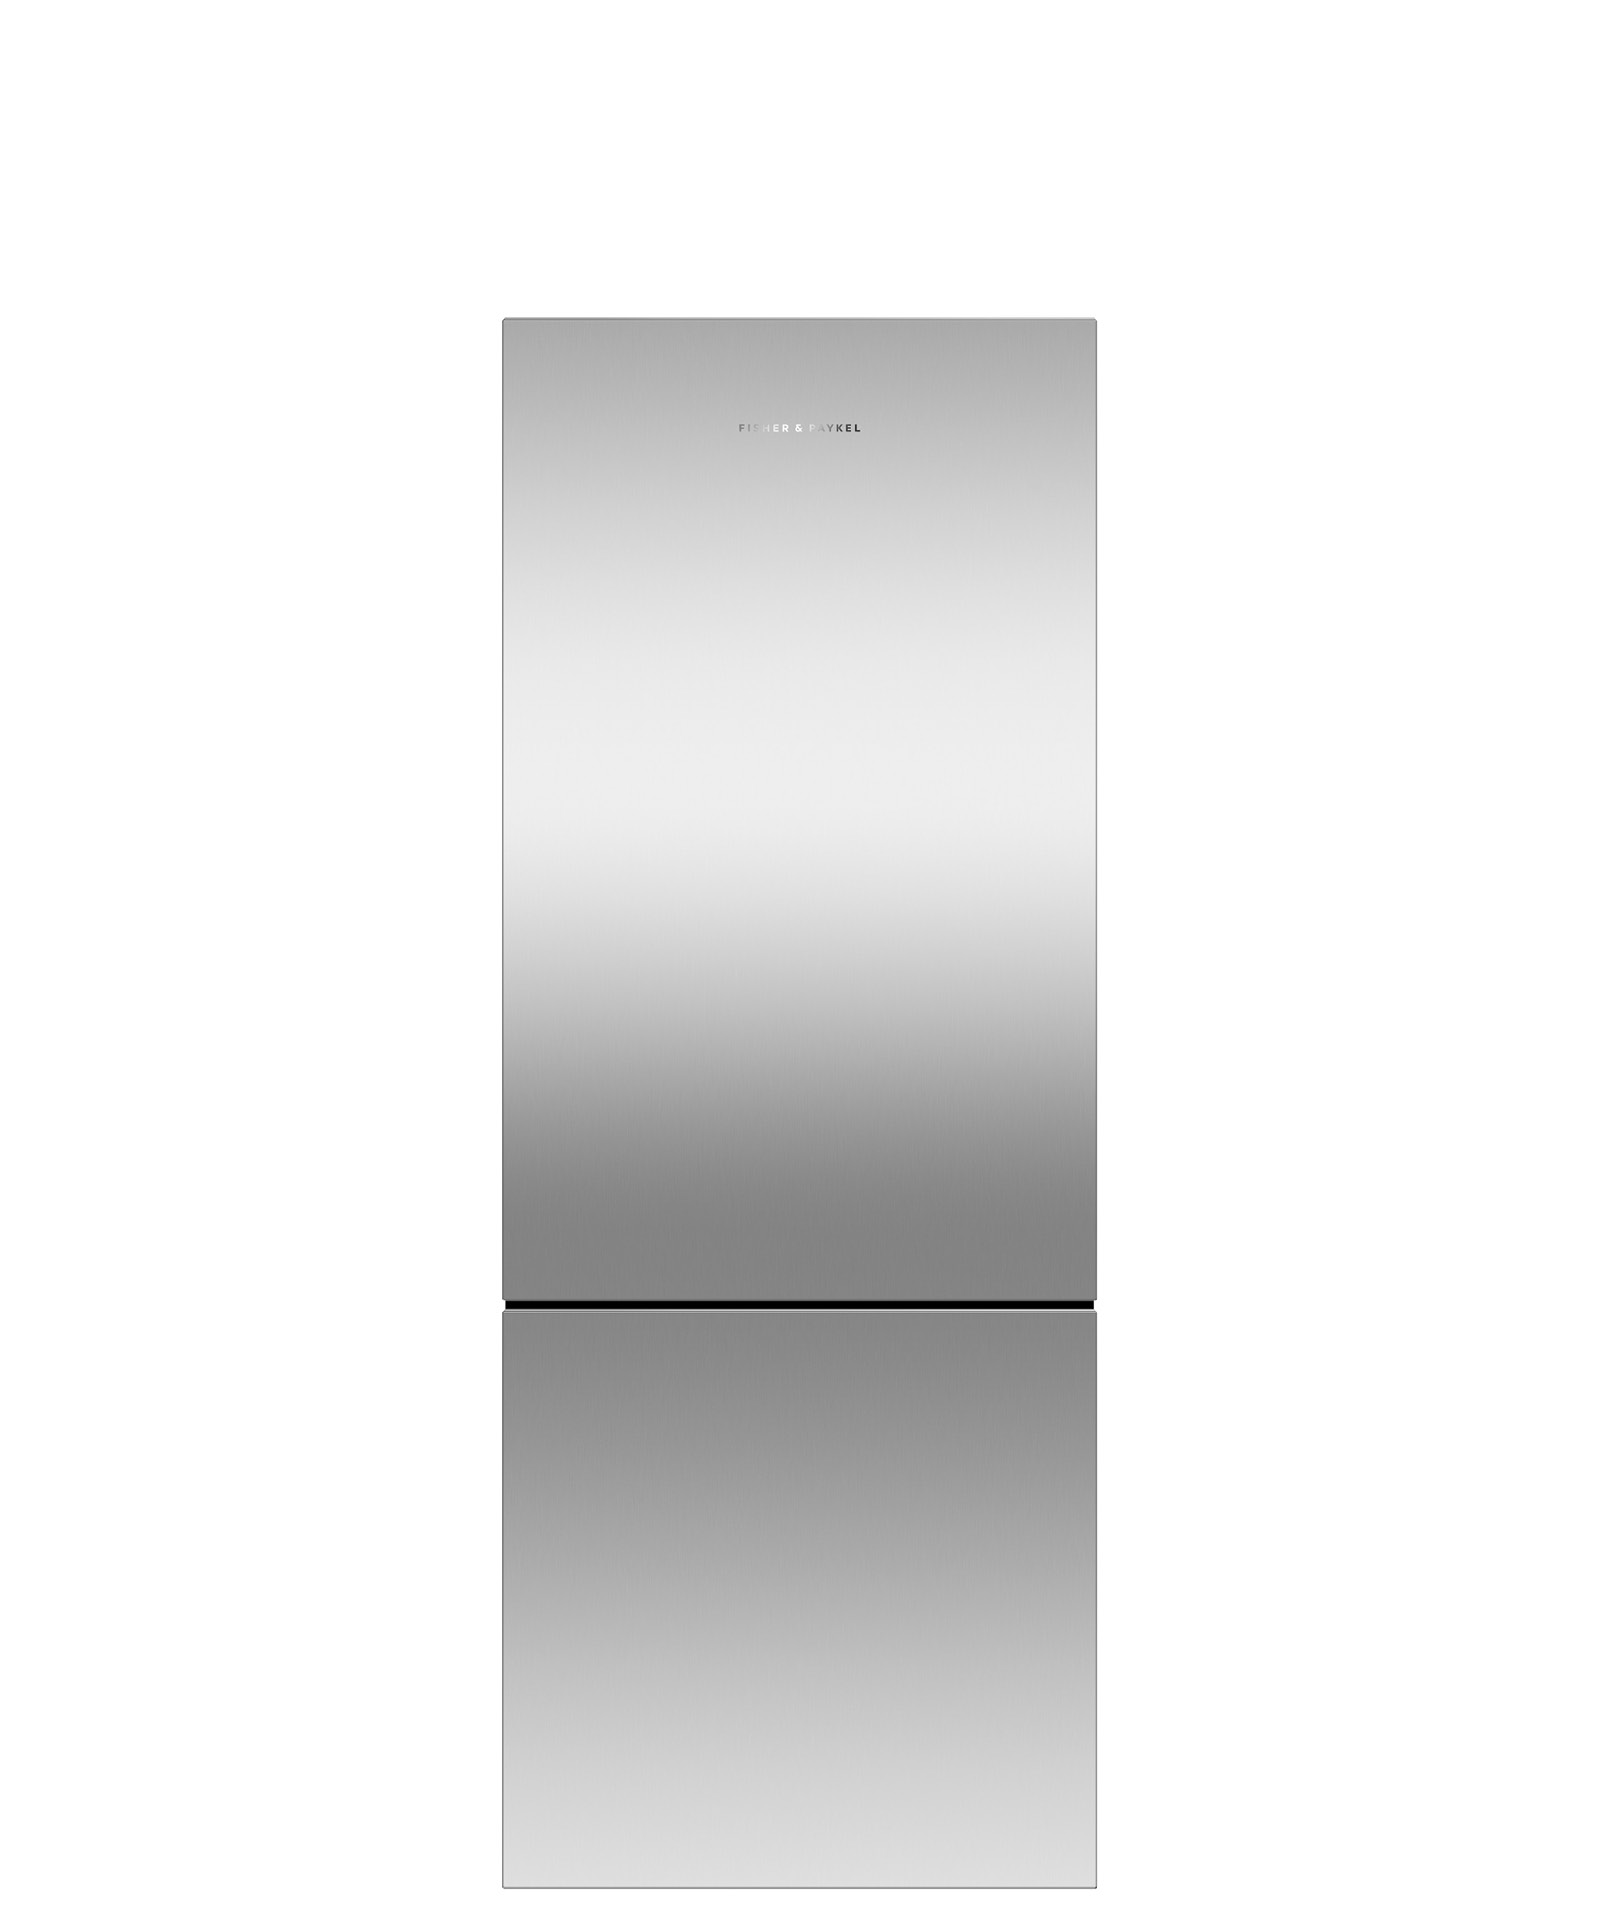 Model: RF135BLPX6_N   Fisher and Paykel Counter Depth Refrigerator 13.5 cu ft